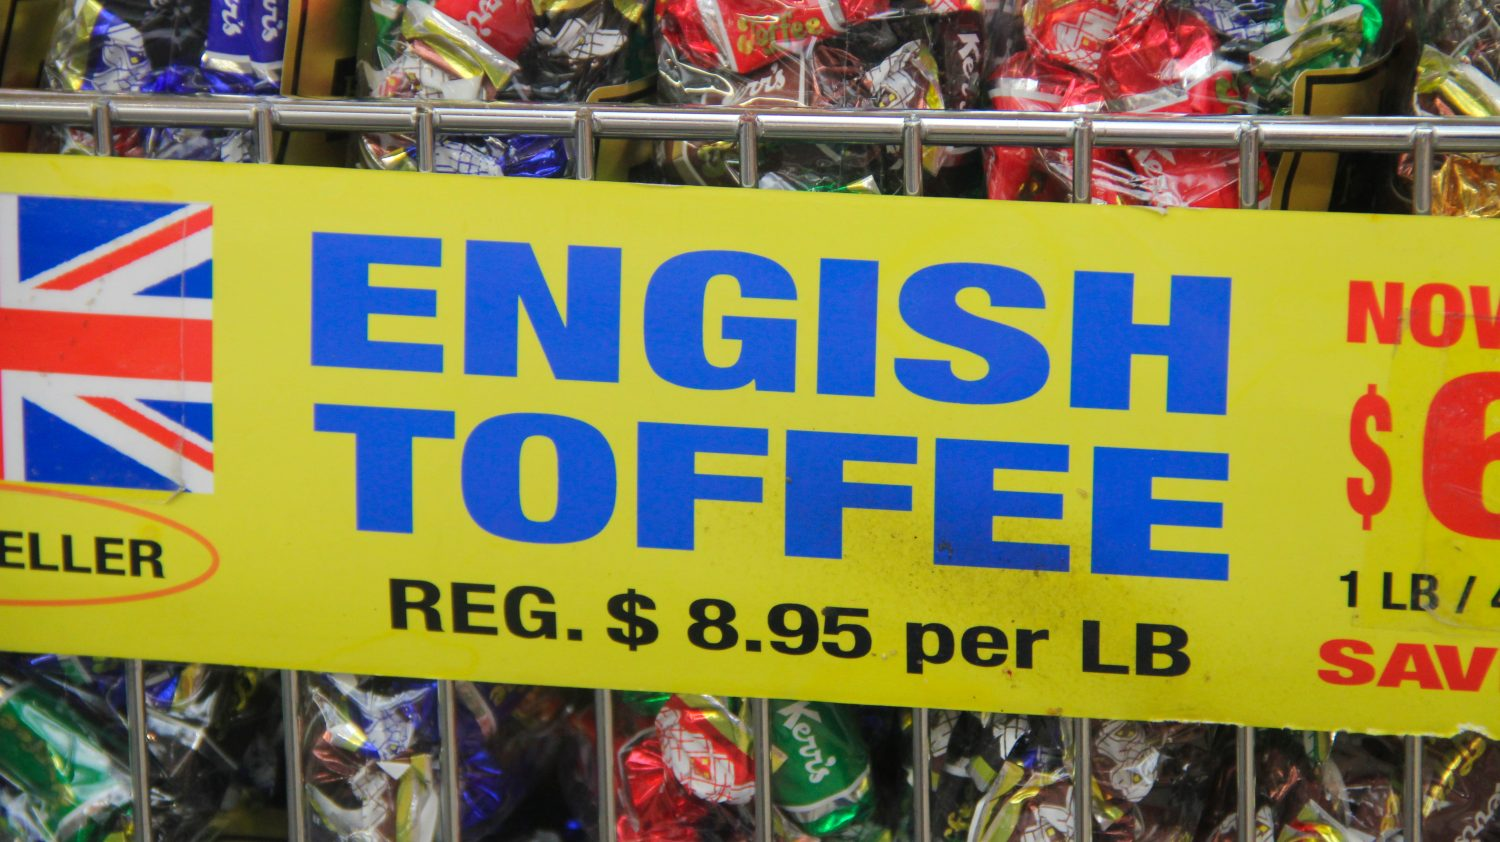 English toffee misspelling